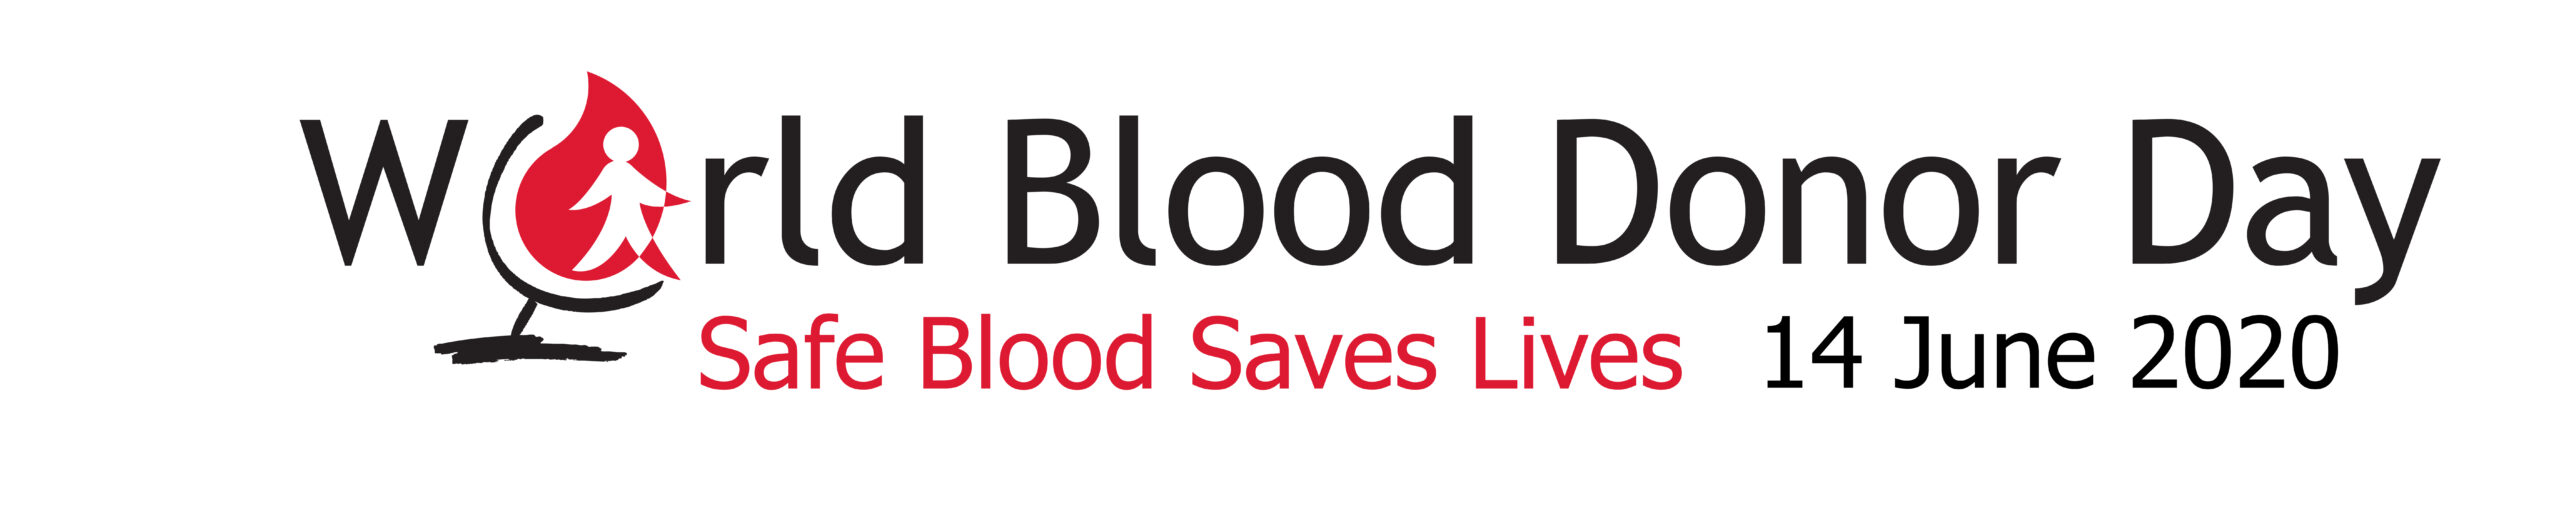 Celebrate World Blood Donor Day with iHeart Radio